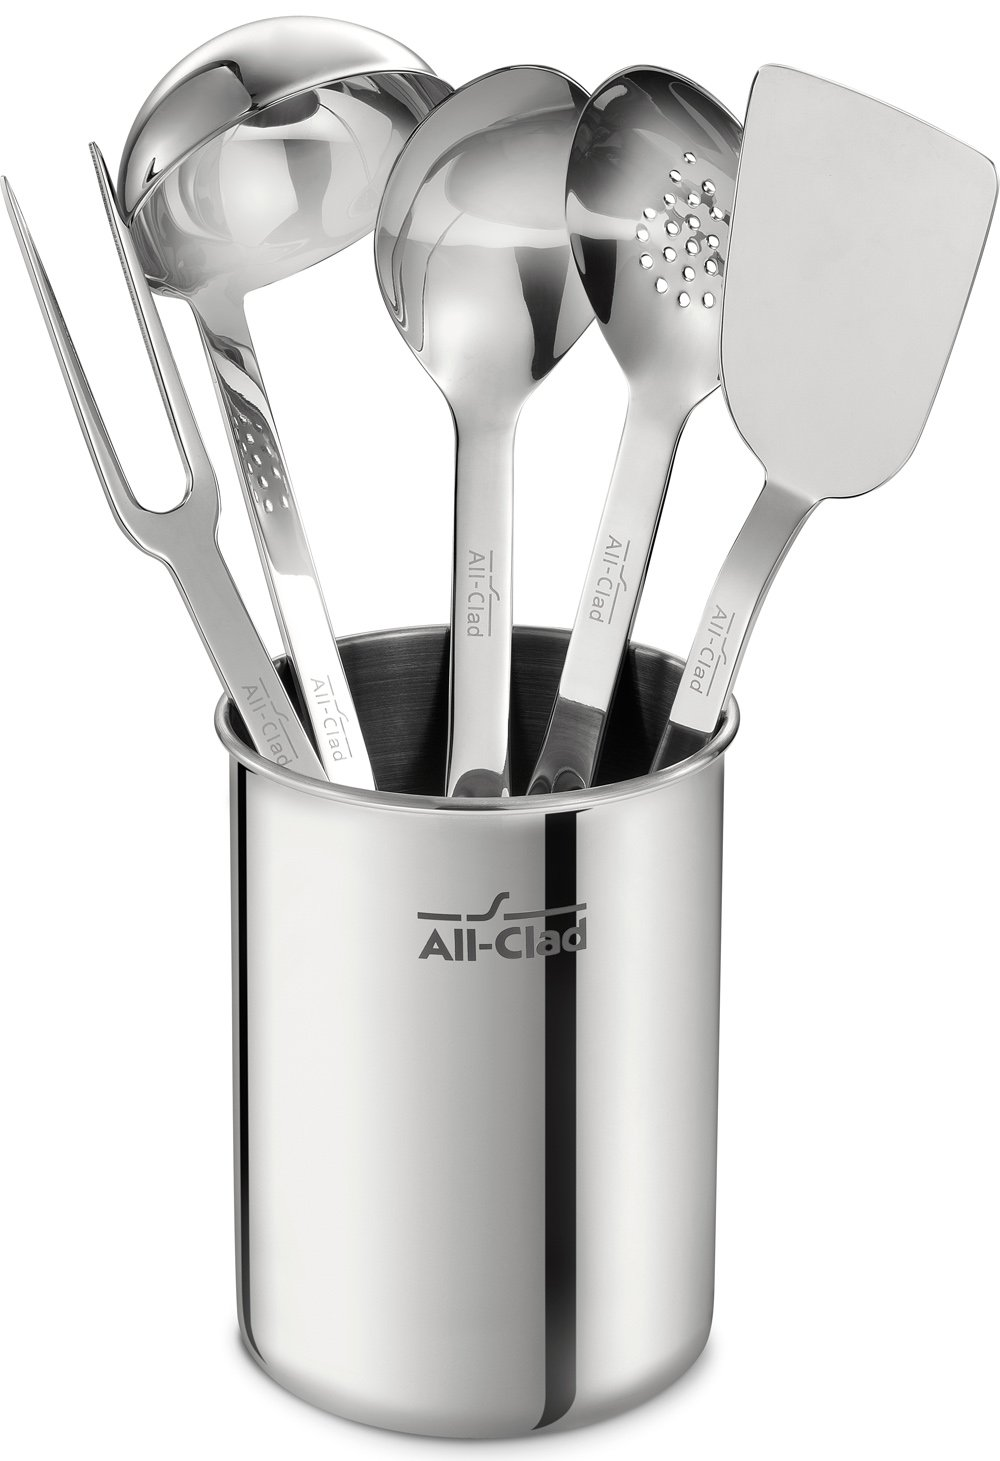 Amazon all clad tset1 stainless steel kitchen tool set caddy amazon all clad tset1 stainless steel kitchen tool set caddy included 6 piece silver kitchen dining teraionfo